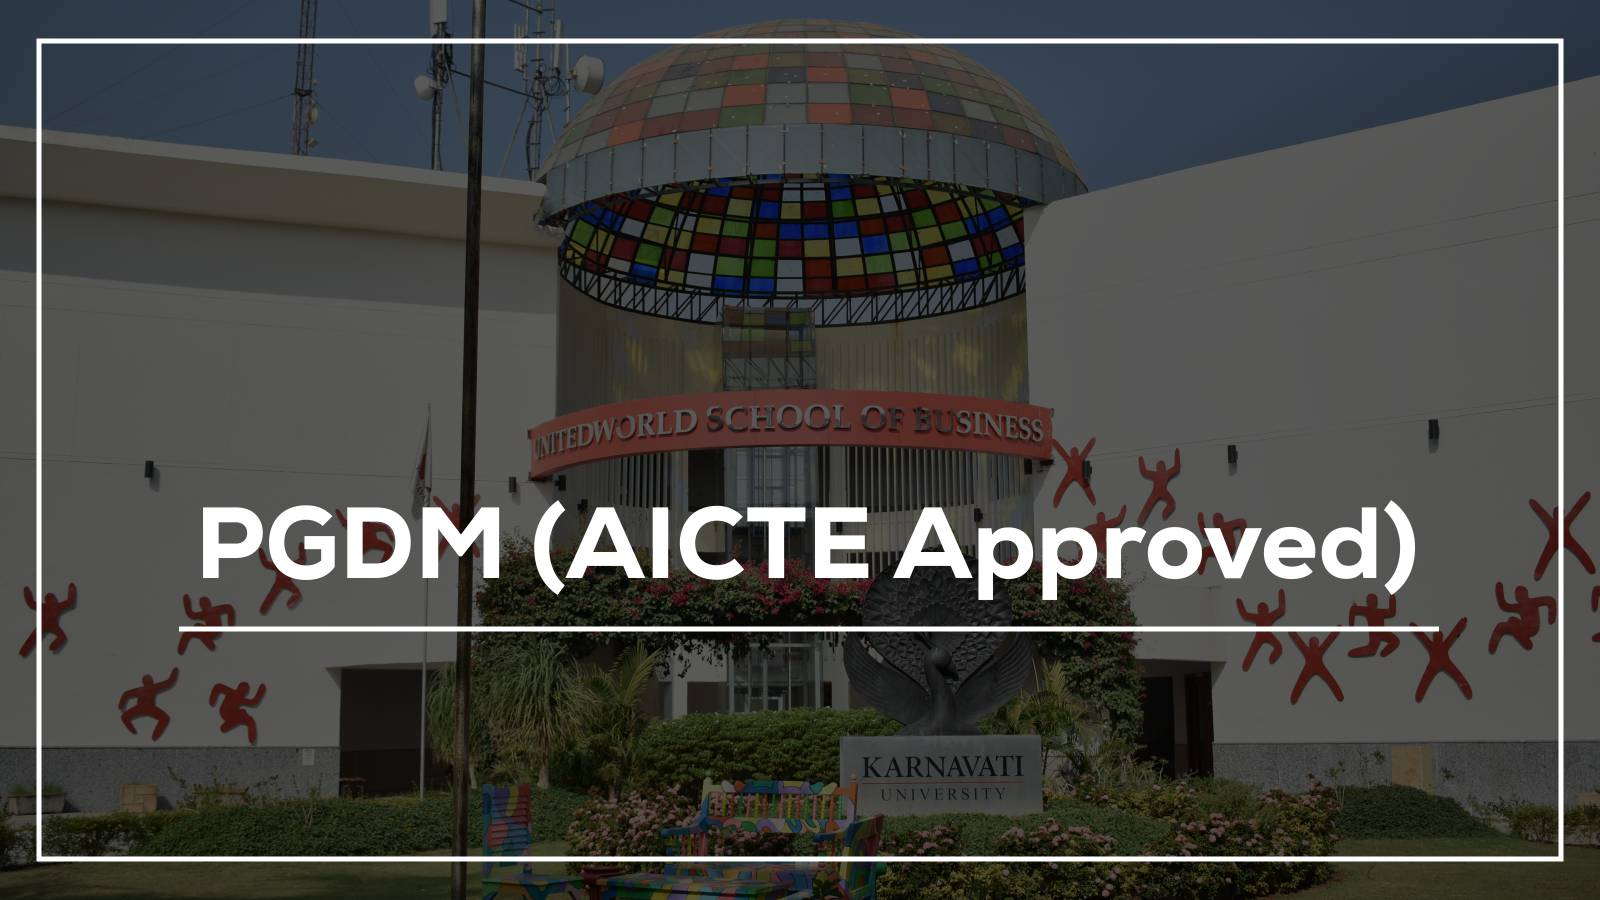 PGDM (AICTE Approved) Image